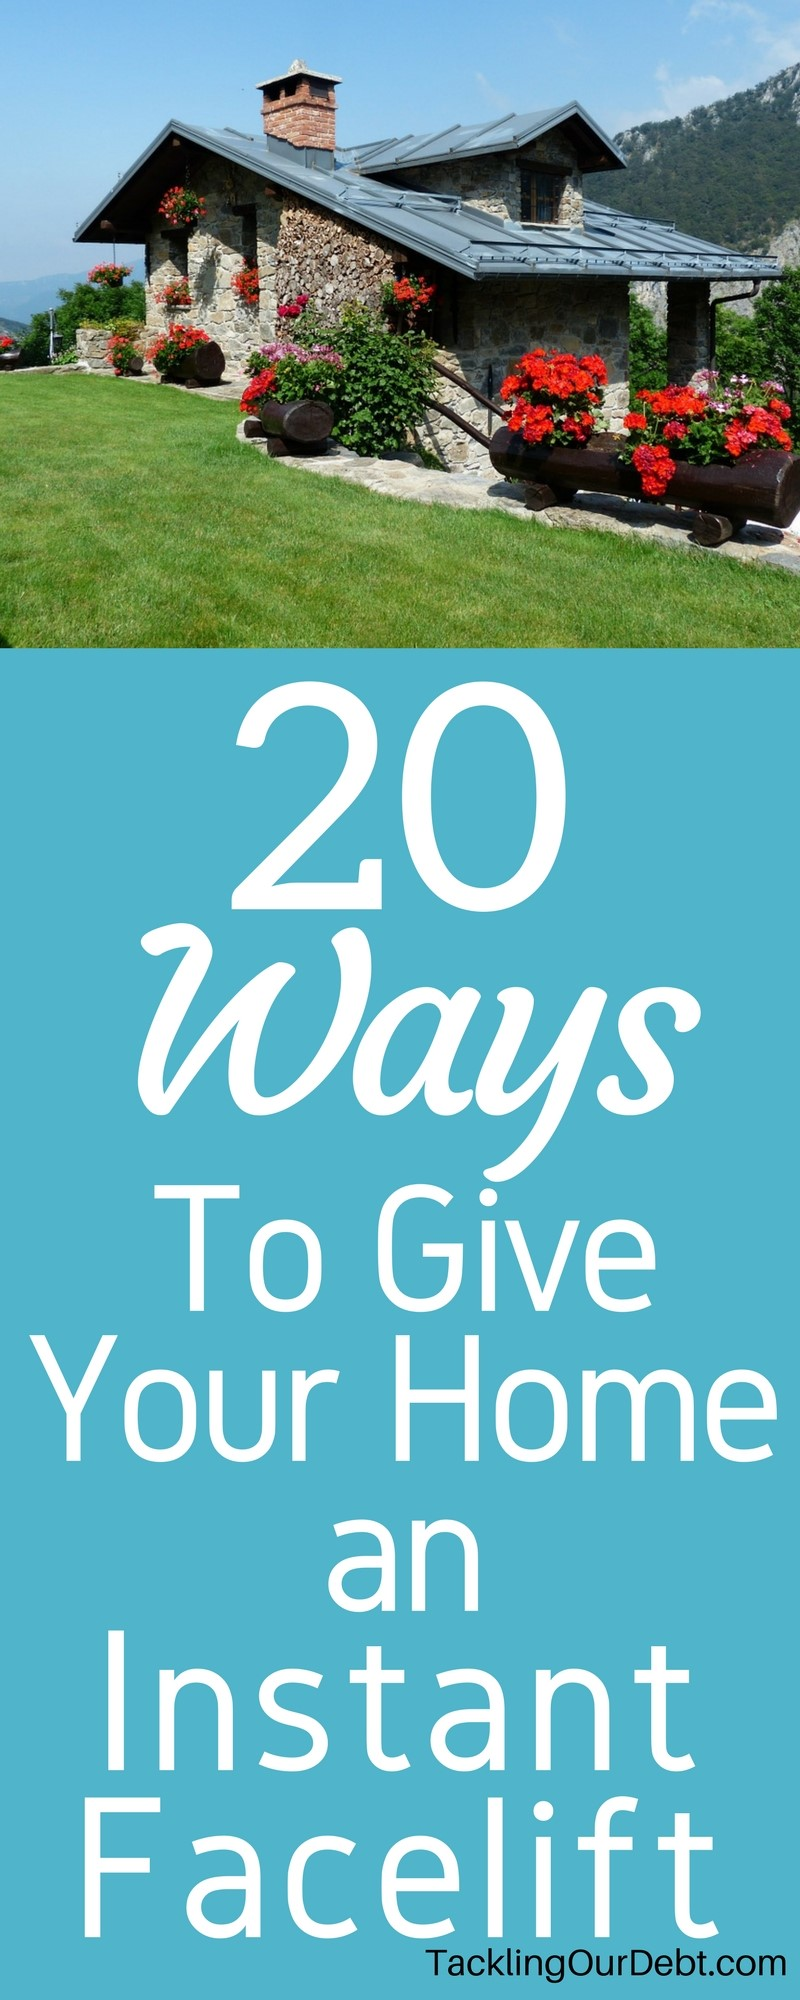 After a few years of living in your dream house, chances are you're starting to feel restless. The home you loved is no longer as dreamy or appealing as it once was. Here are 20 easy and inexpensive ways to give your home an instant facelift to freshen up the house you love.